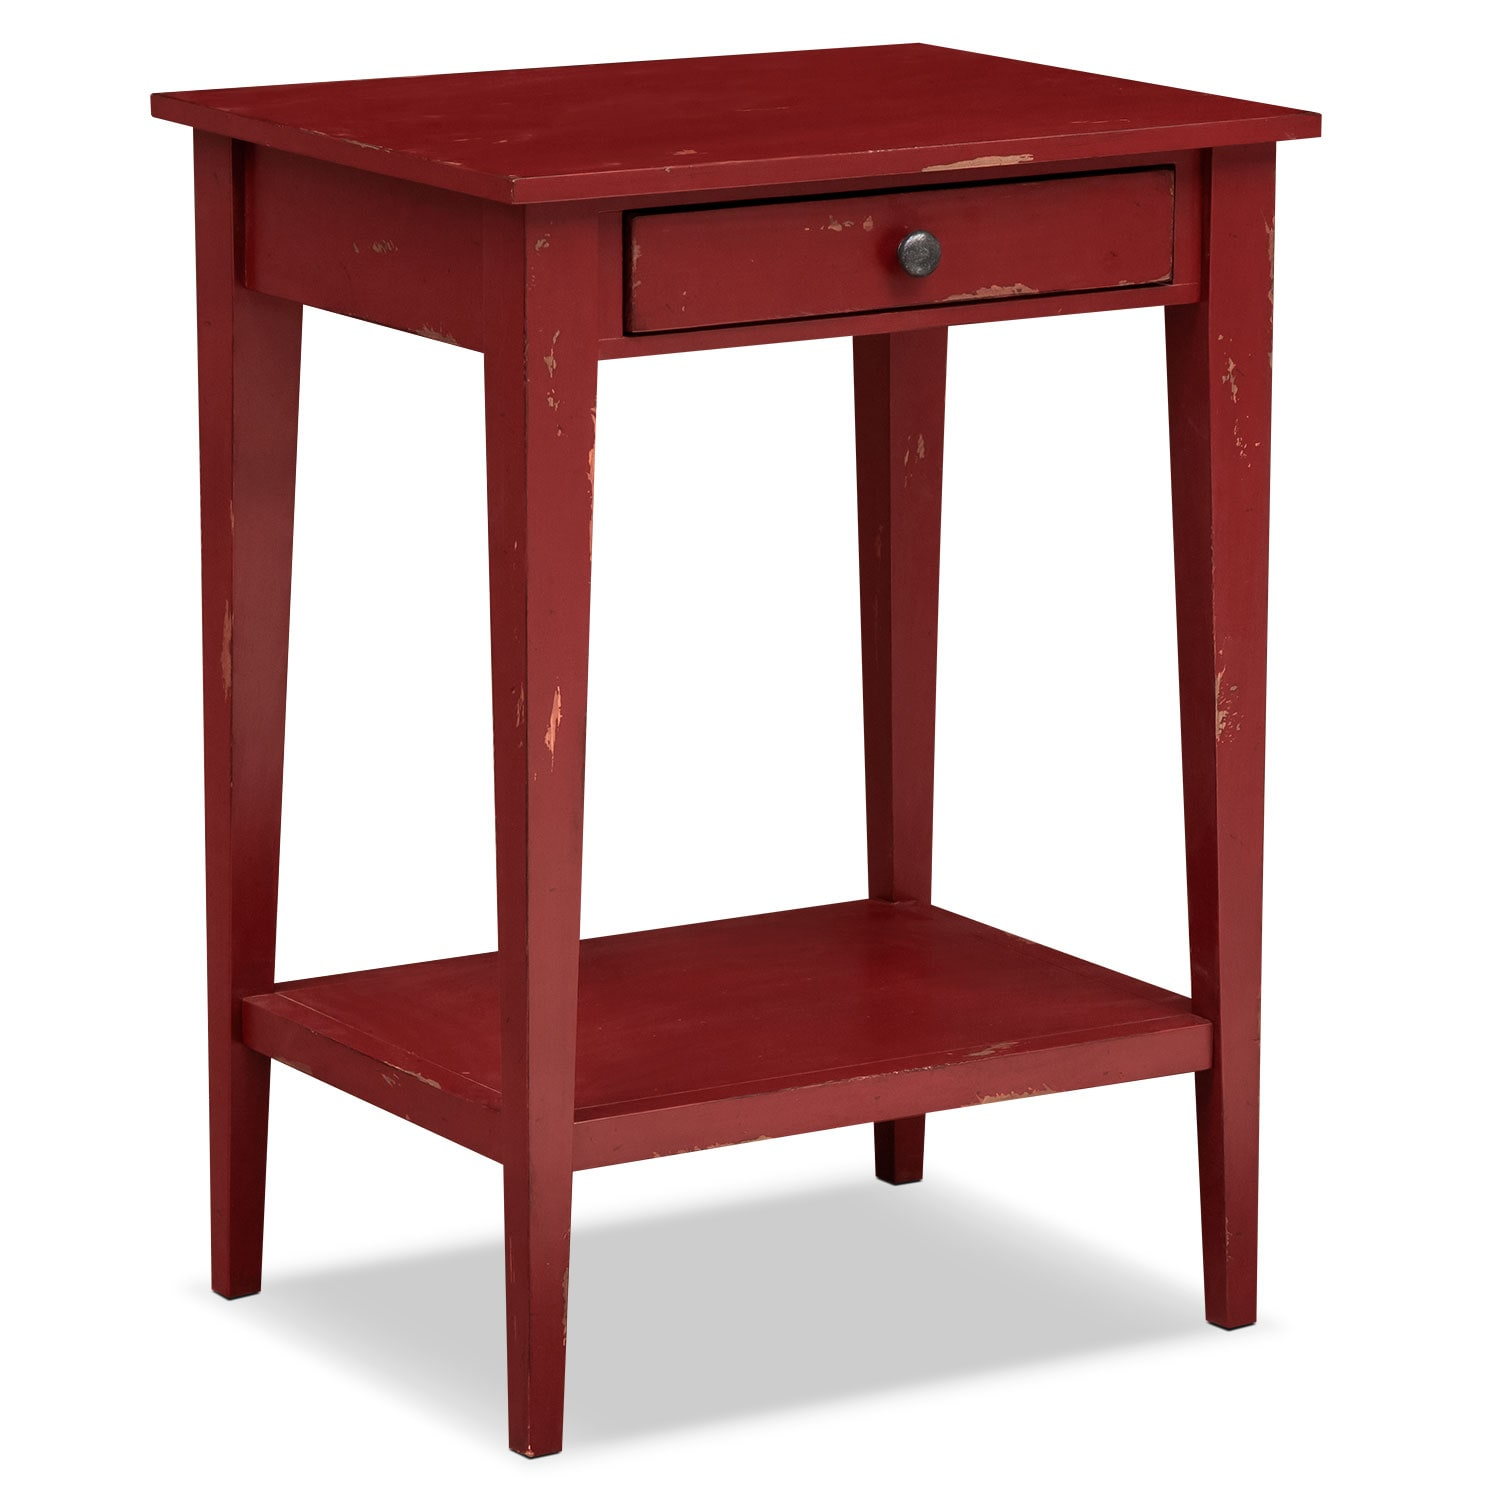 anthony end table   red. Value City Furniture   Cuyahoga Falls  OH 44221